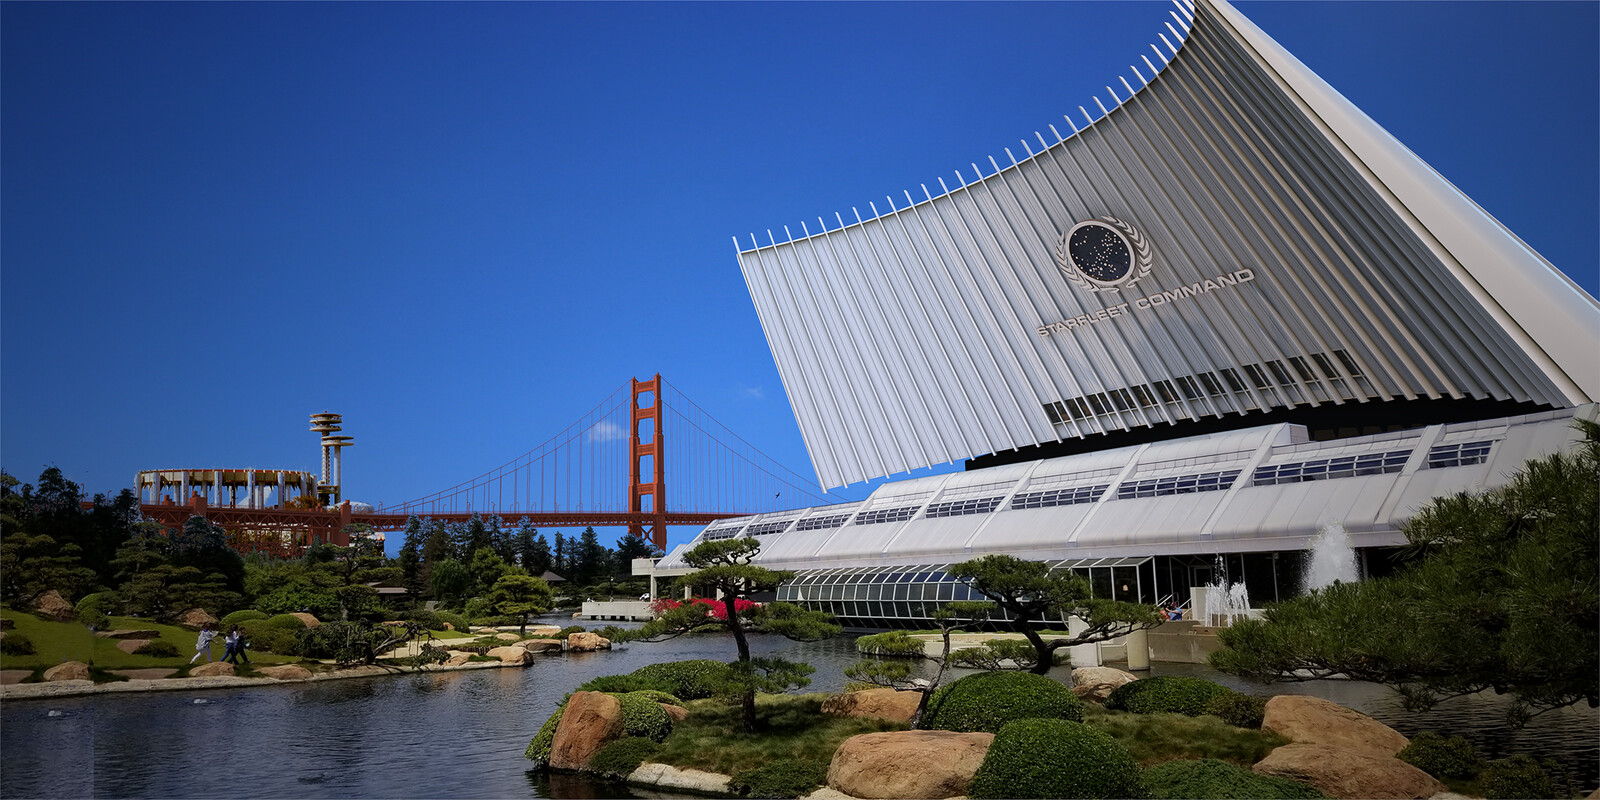 Starfleet Command Administration Building